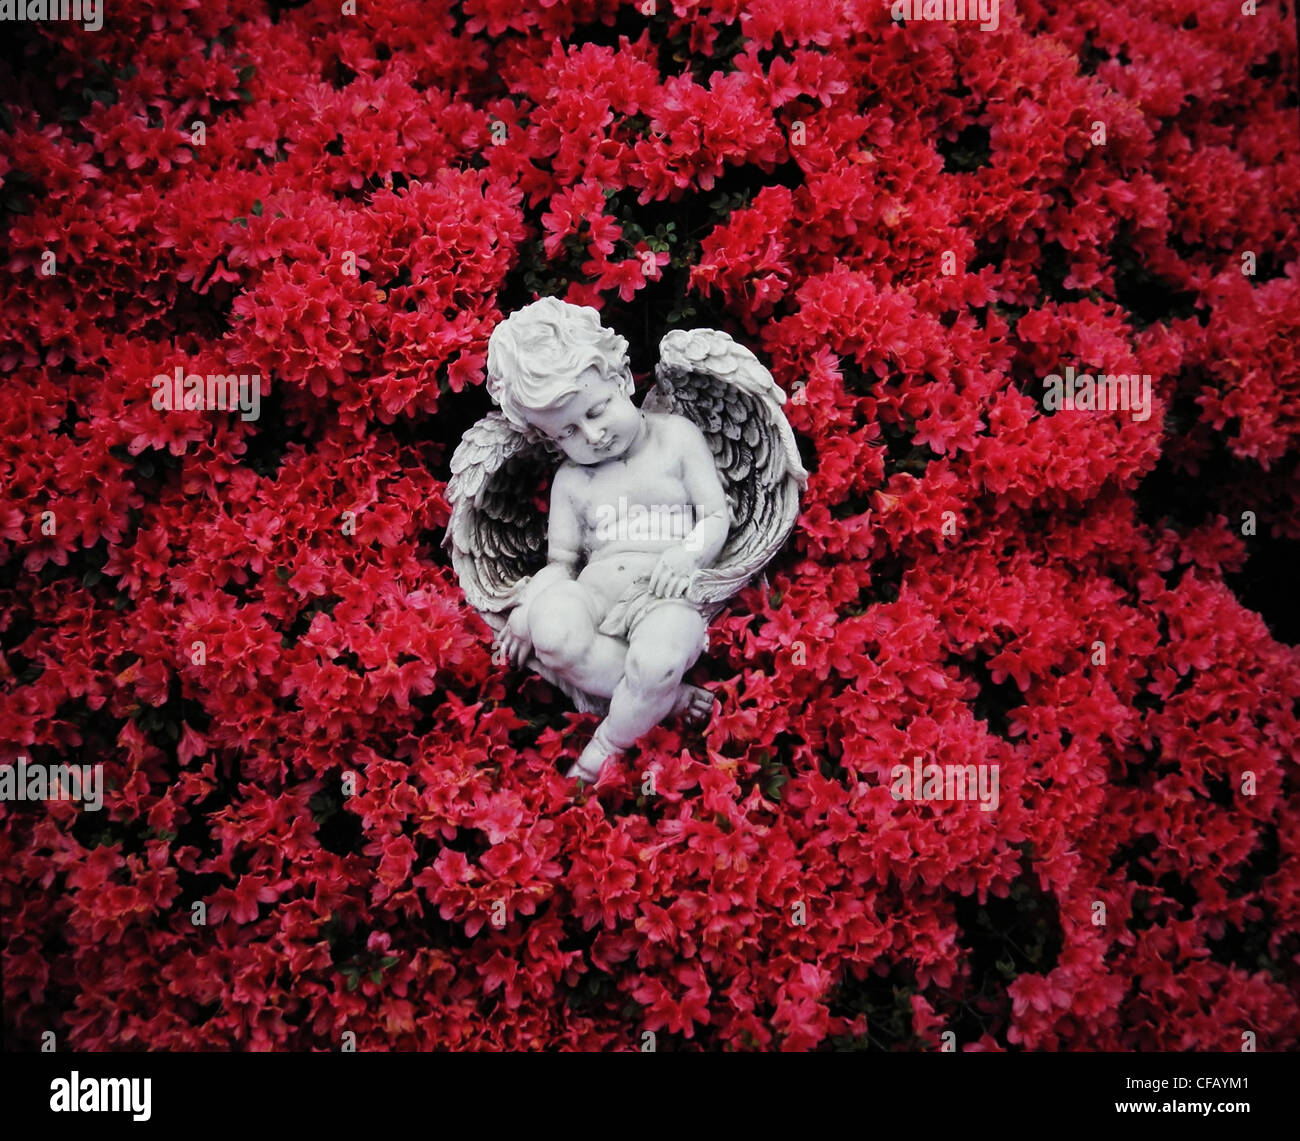 Angel, child, symbol, concepts, wing, cemetery, grief, bush, shrub, blossoms, flourishes, red - Stock Image